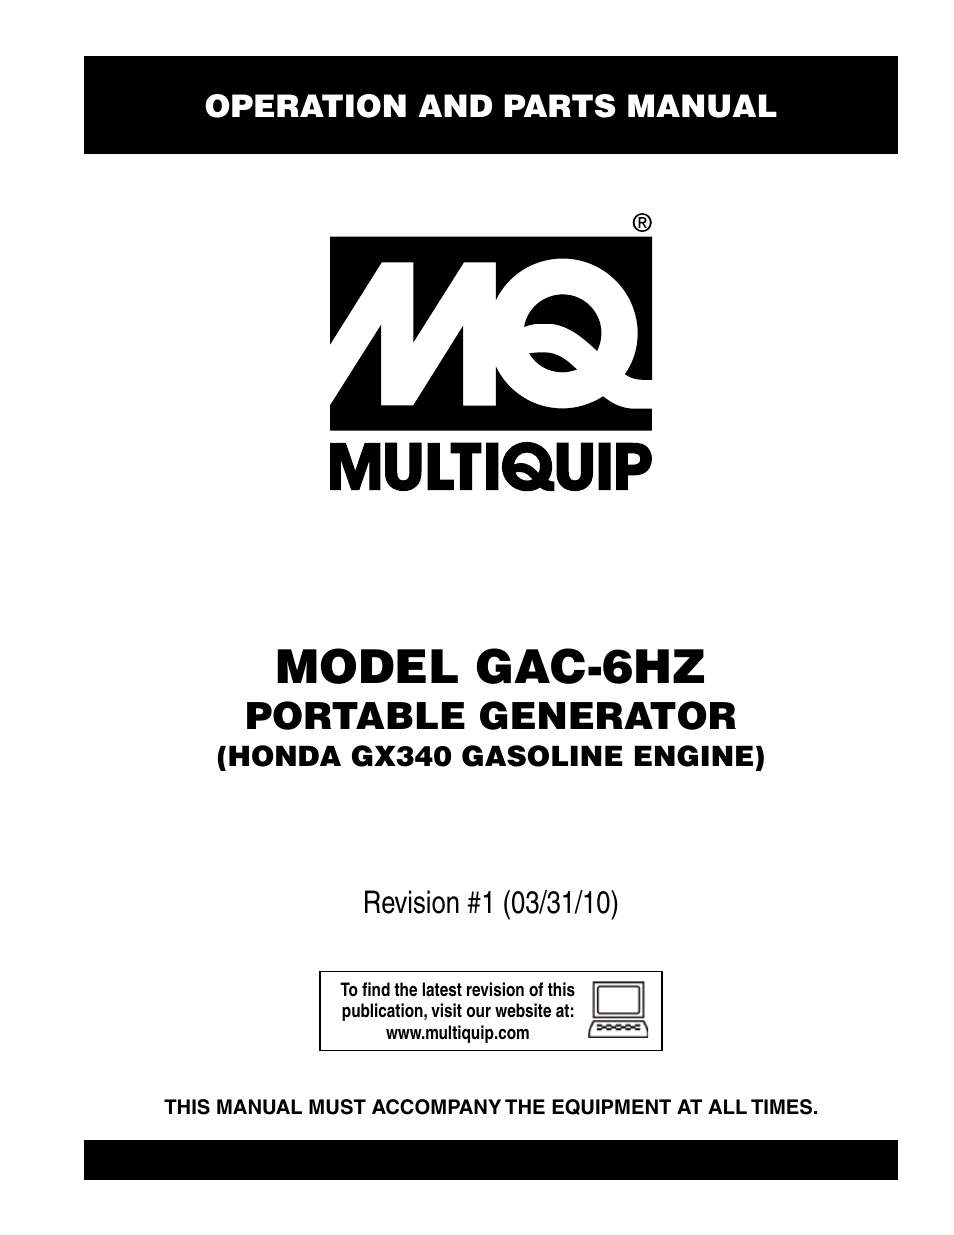 Multiquip pOrtable generatOr (HOnda gX340 gasOline engine